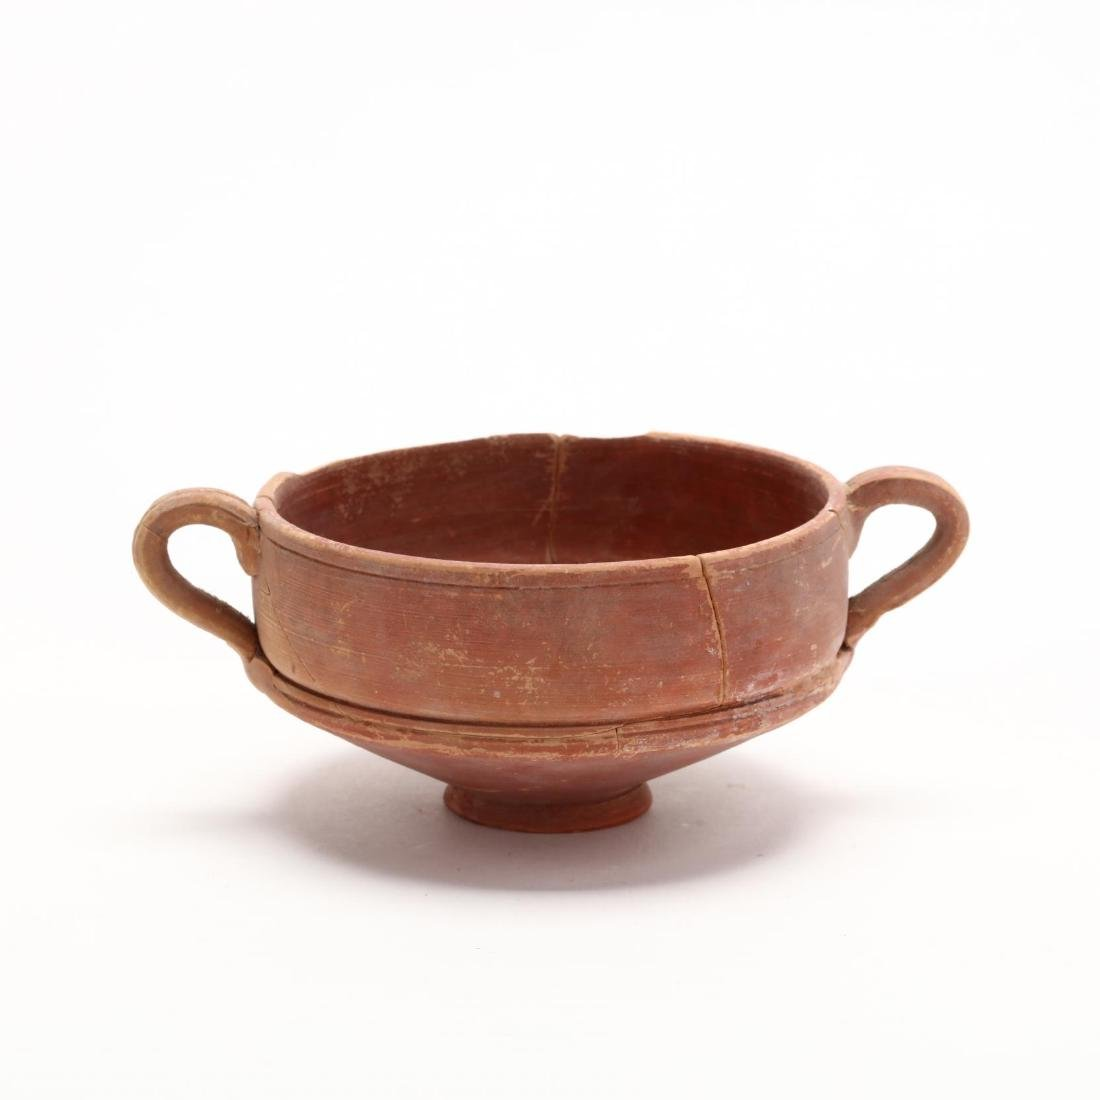 Cypriot Hellenistic Footed Red Ware Bowl - 4